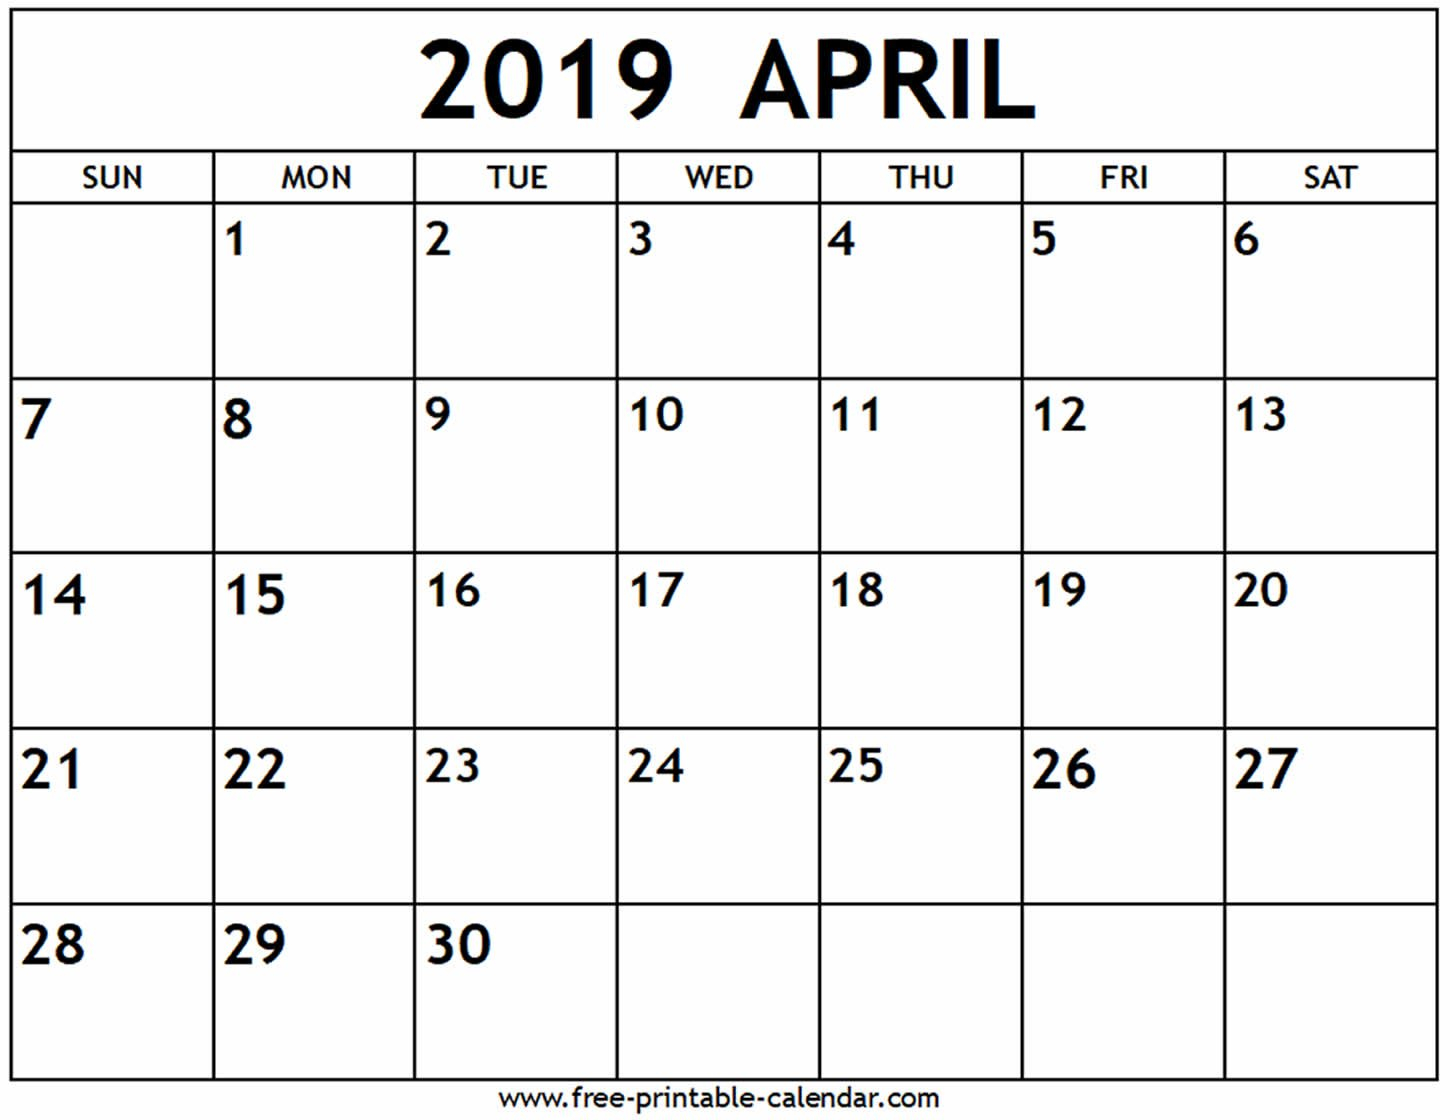 April 2019 Calendar - Free-Printable-Calendar A Calendar For April 2019